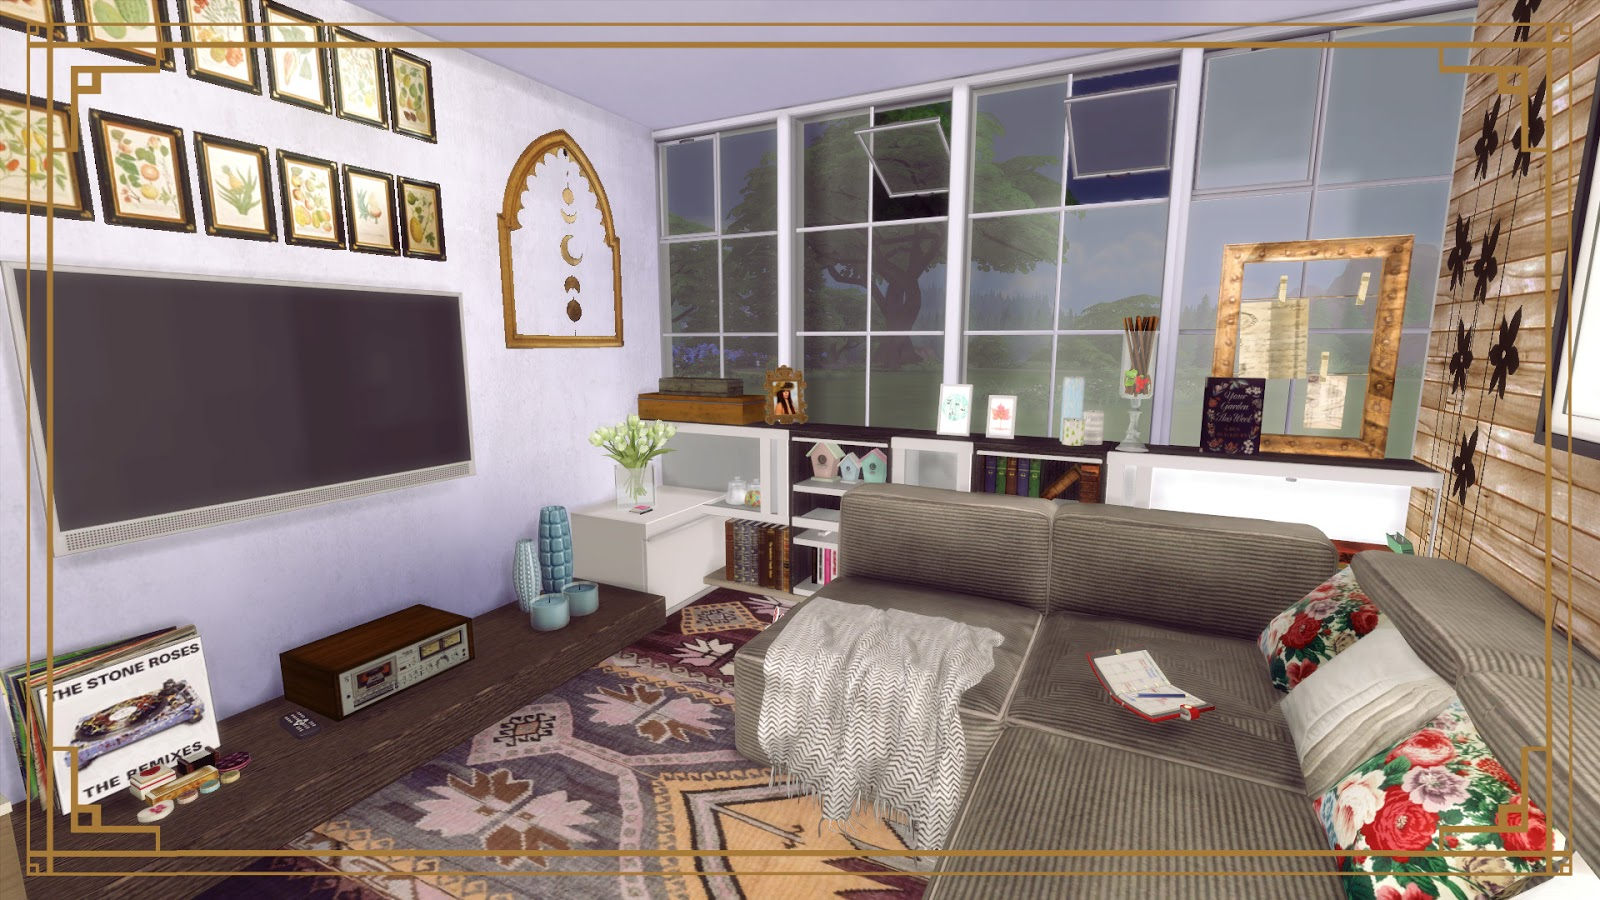 Sims 4 cozy living room ii dinha for Sims 4 living room ideas